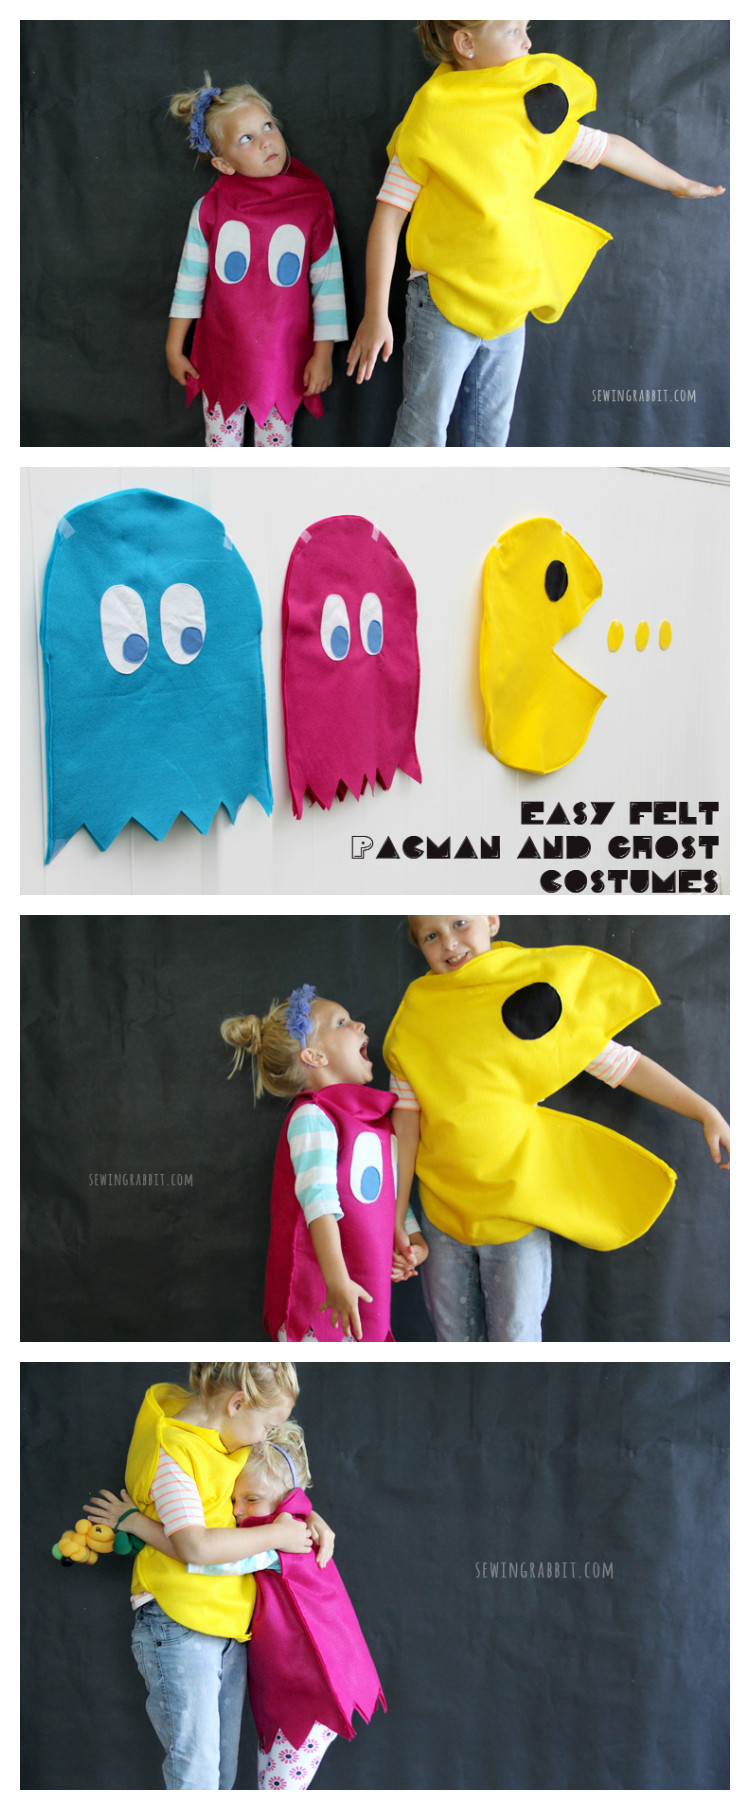 Best ideas about DIY Pacman Costume . Save or Pin Pac Man & Ghost Costume DIY The Sewing Rabbit Now.